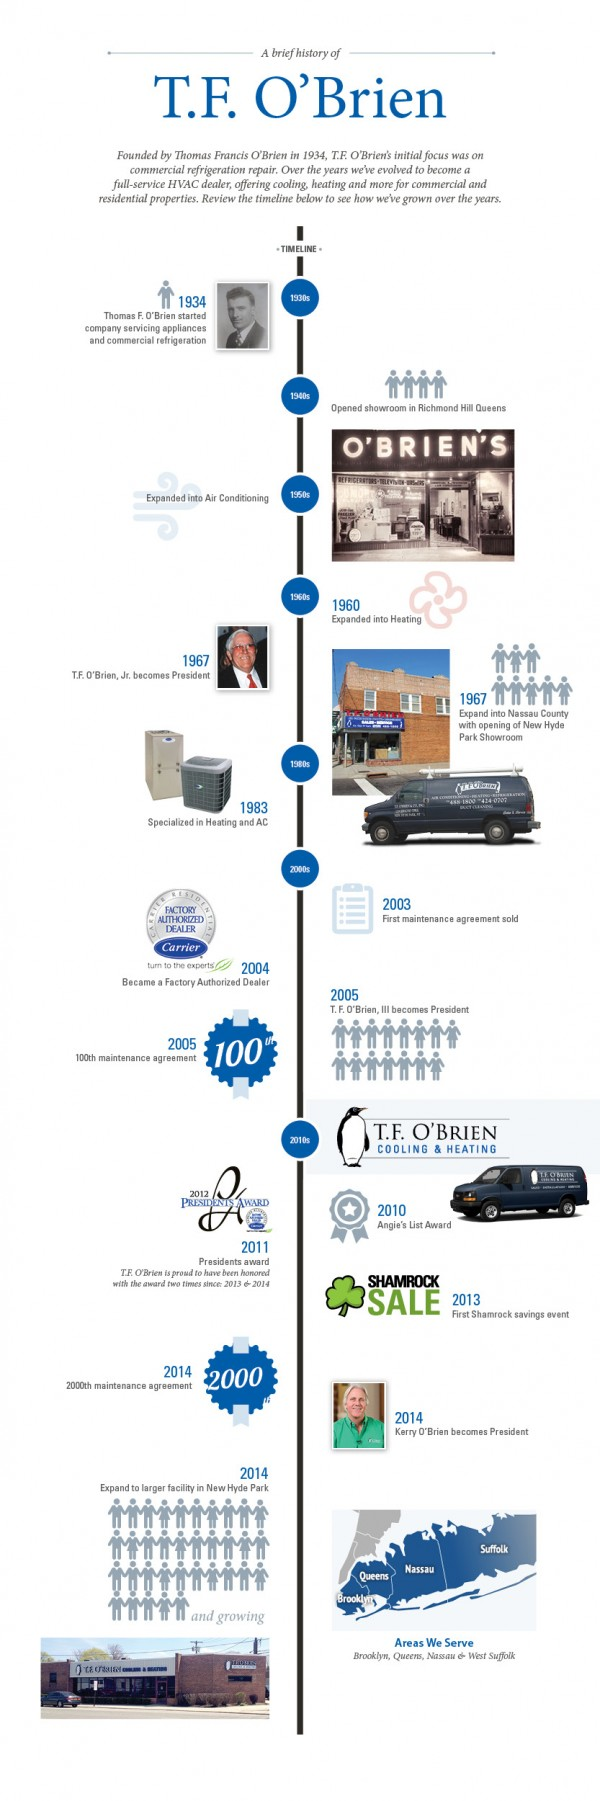 T. F. O'Brien - History Timeline